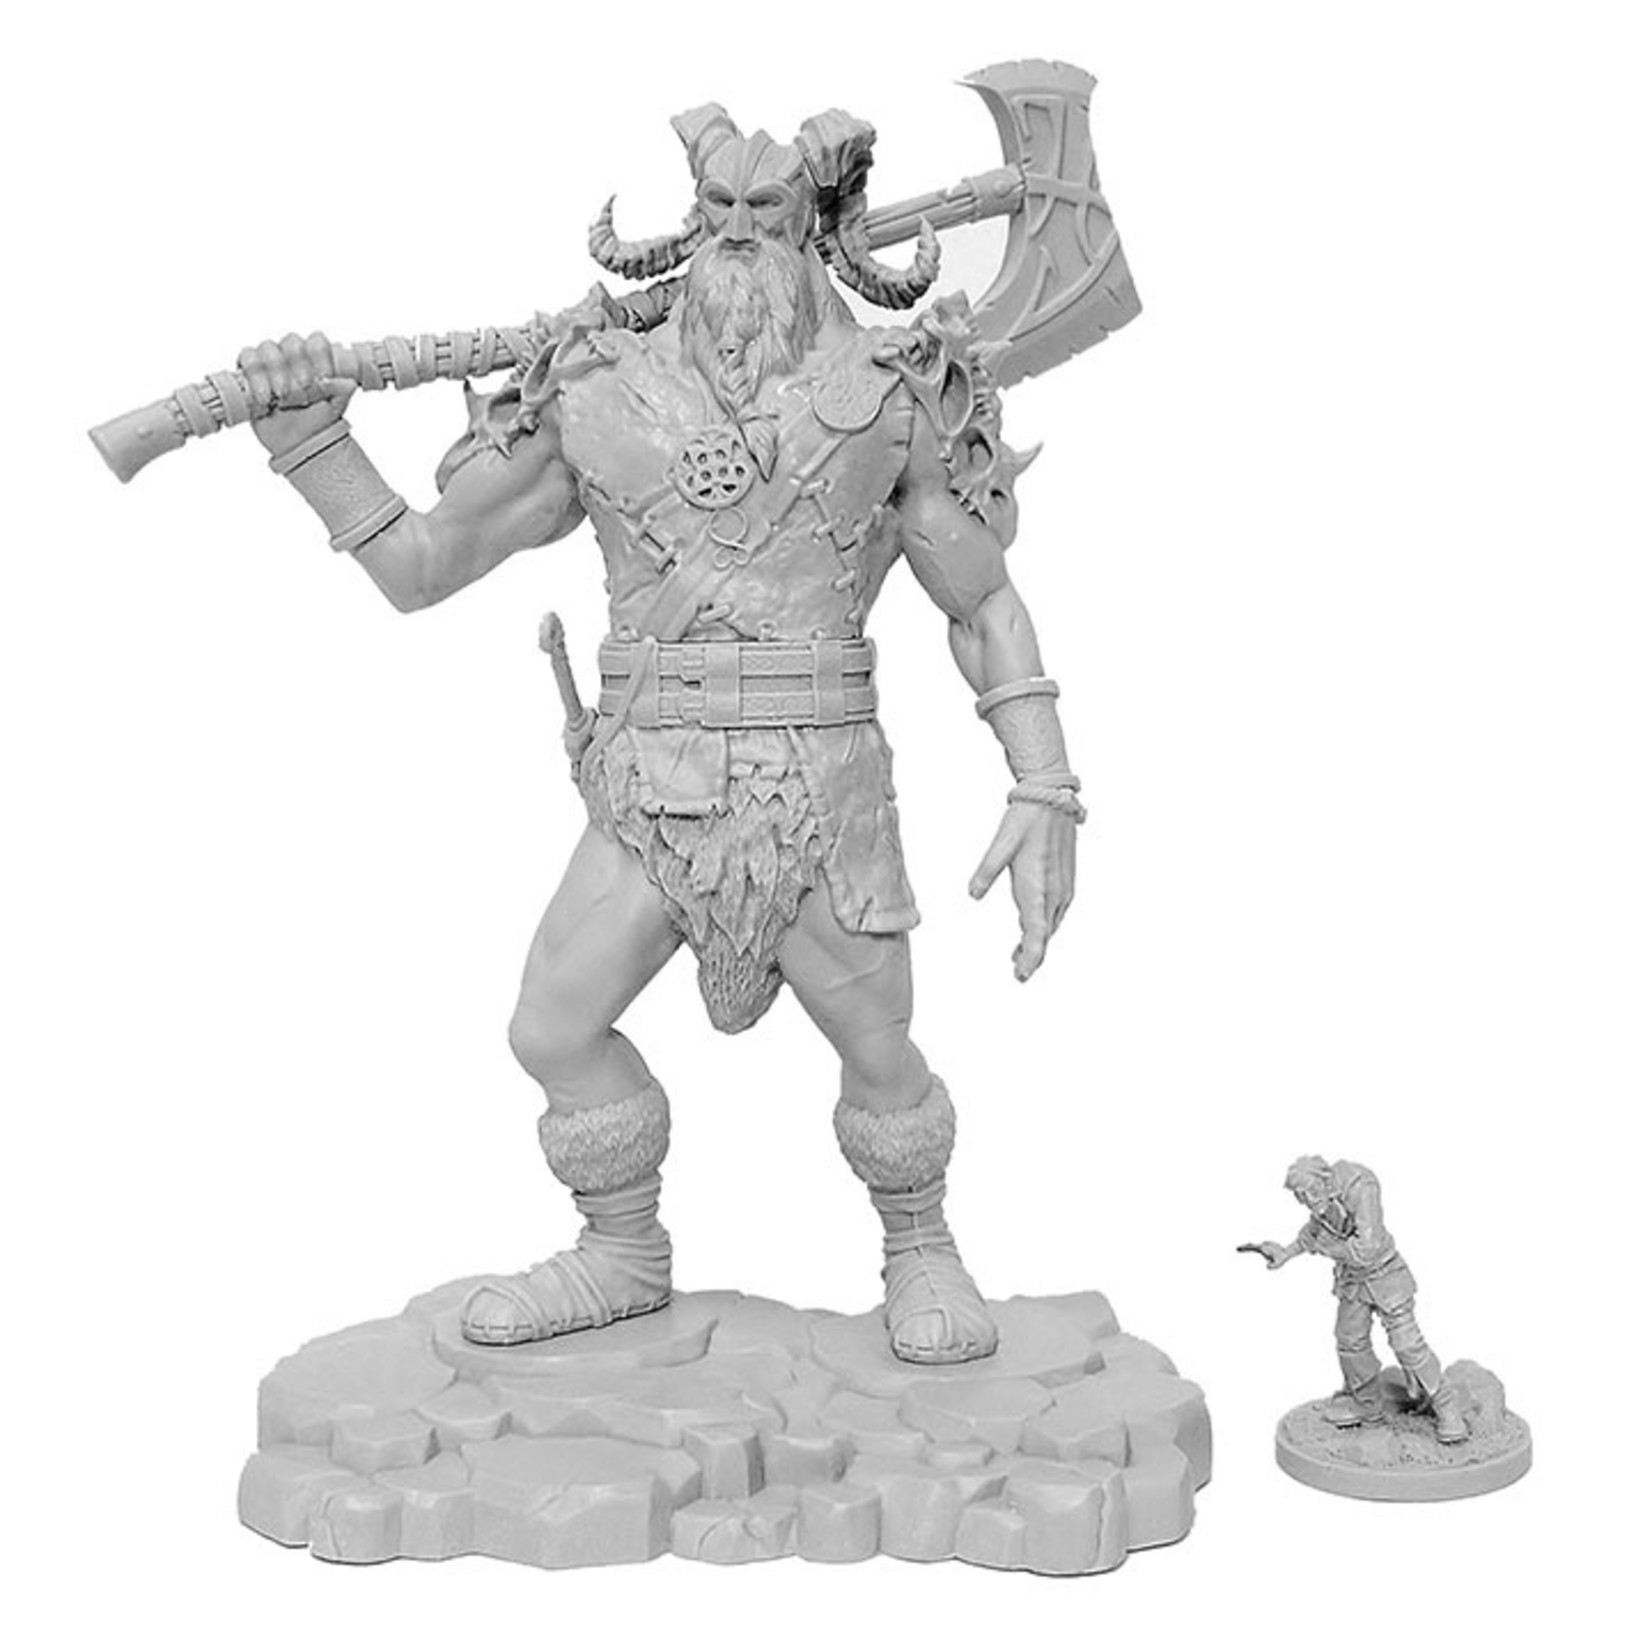 Gale Force 9 Frost Giant Ravager